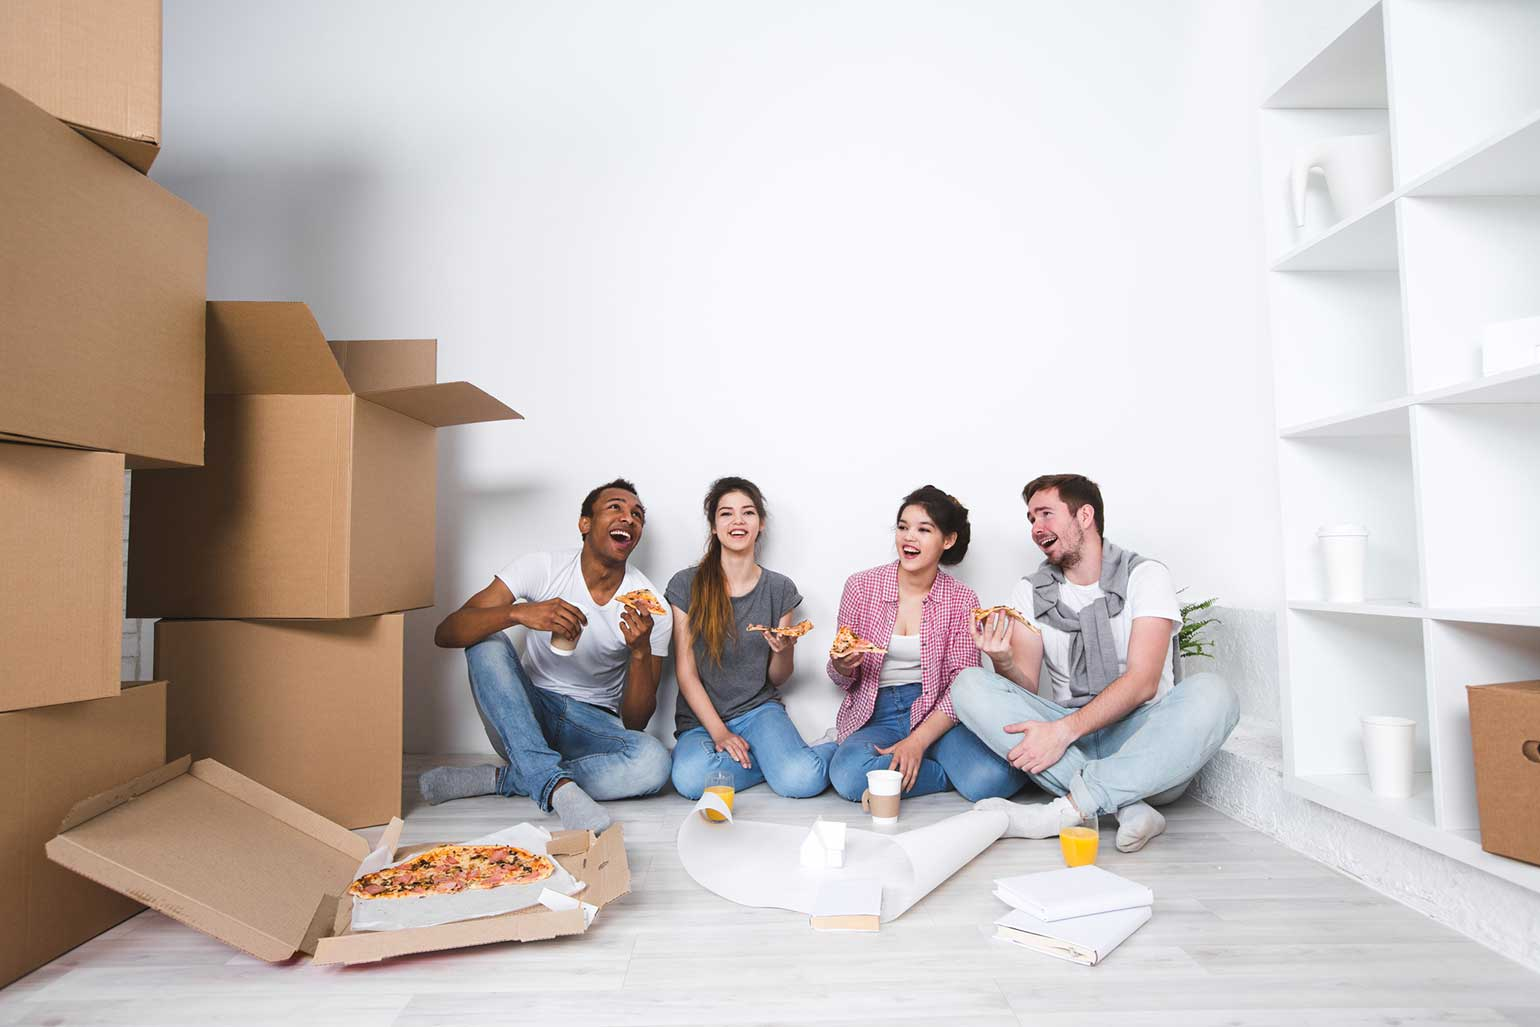 Happy first time home buyers and their 2 friends eating pizza on the floor after unpacking moving boxes.